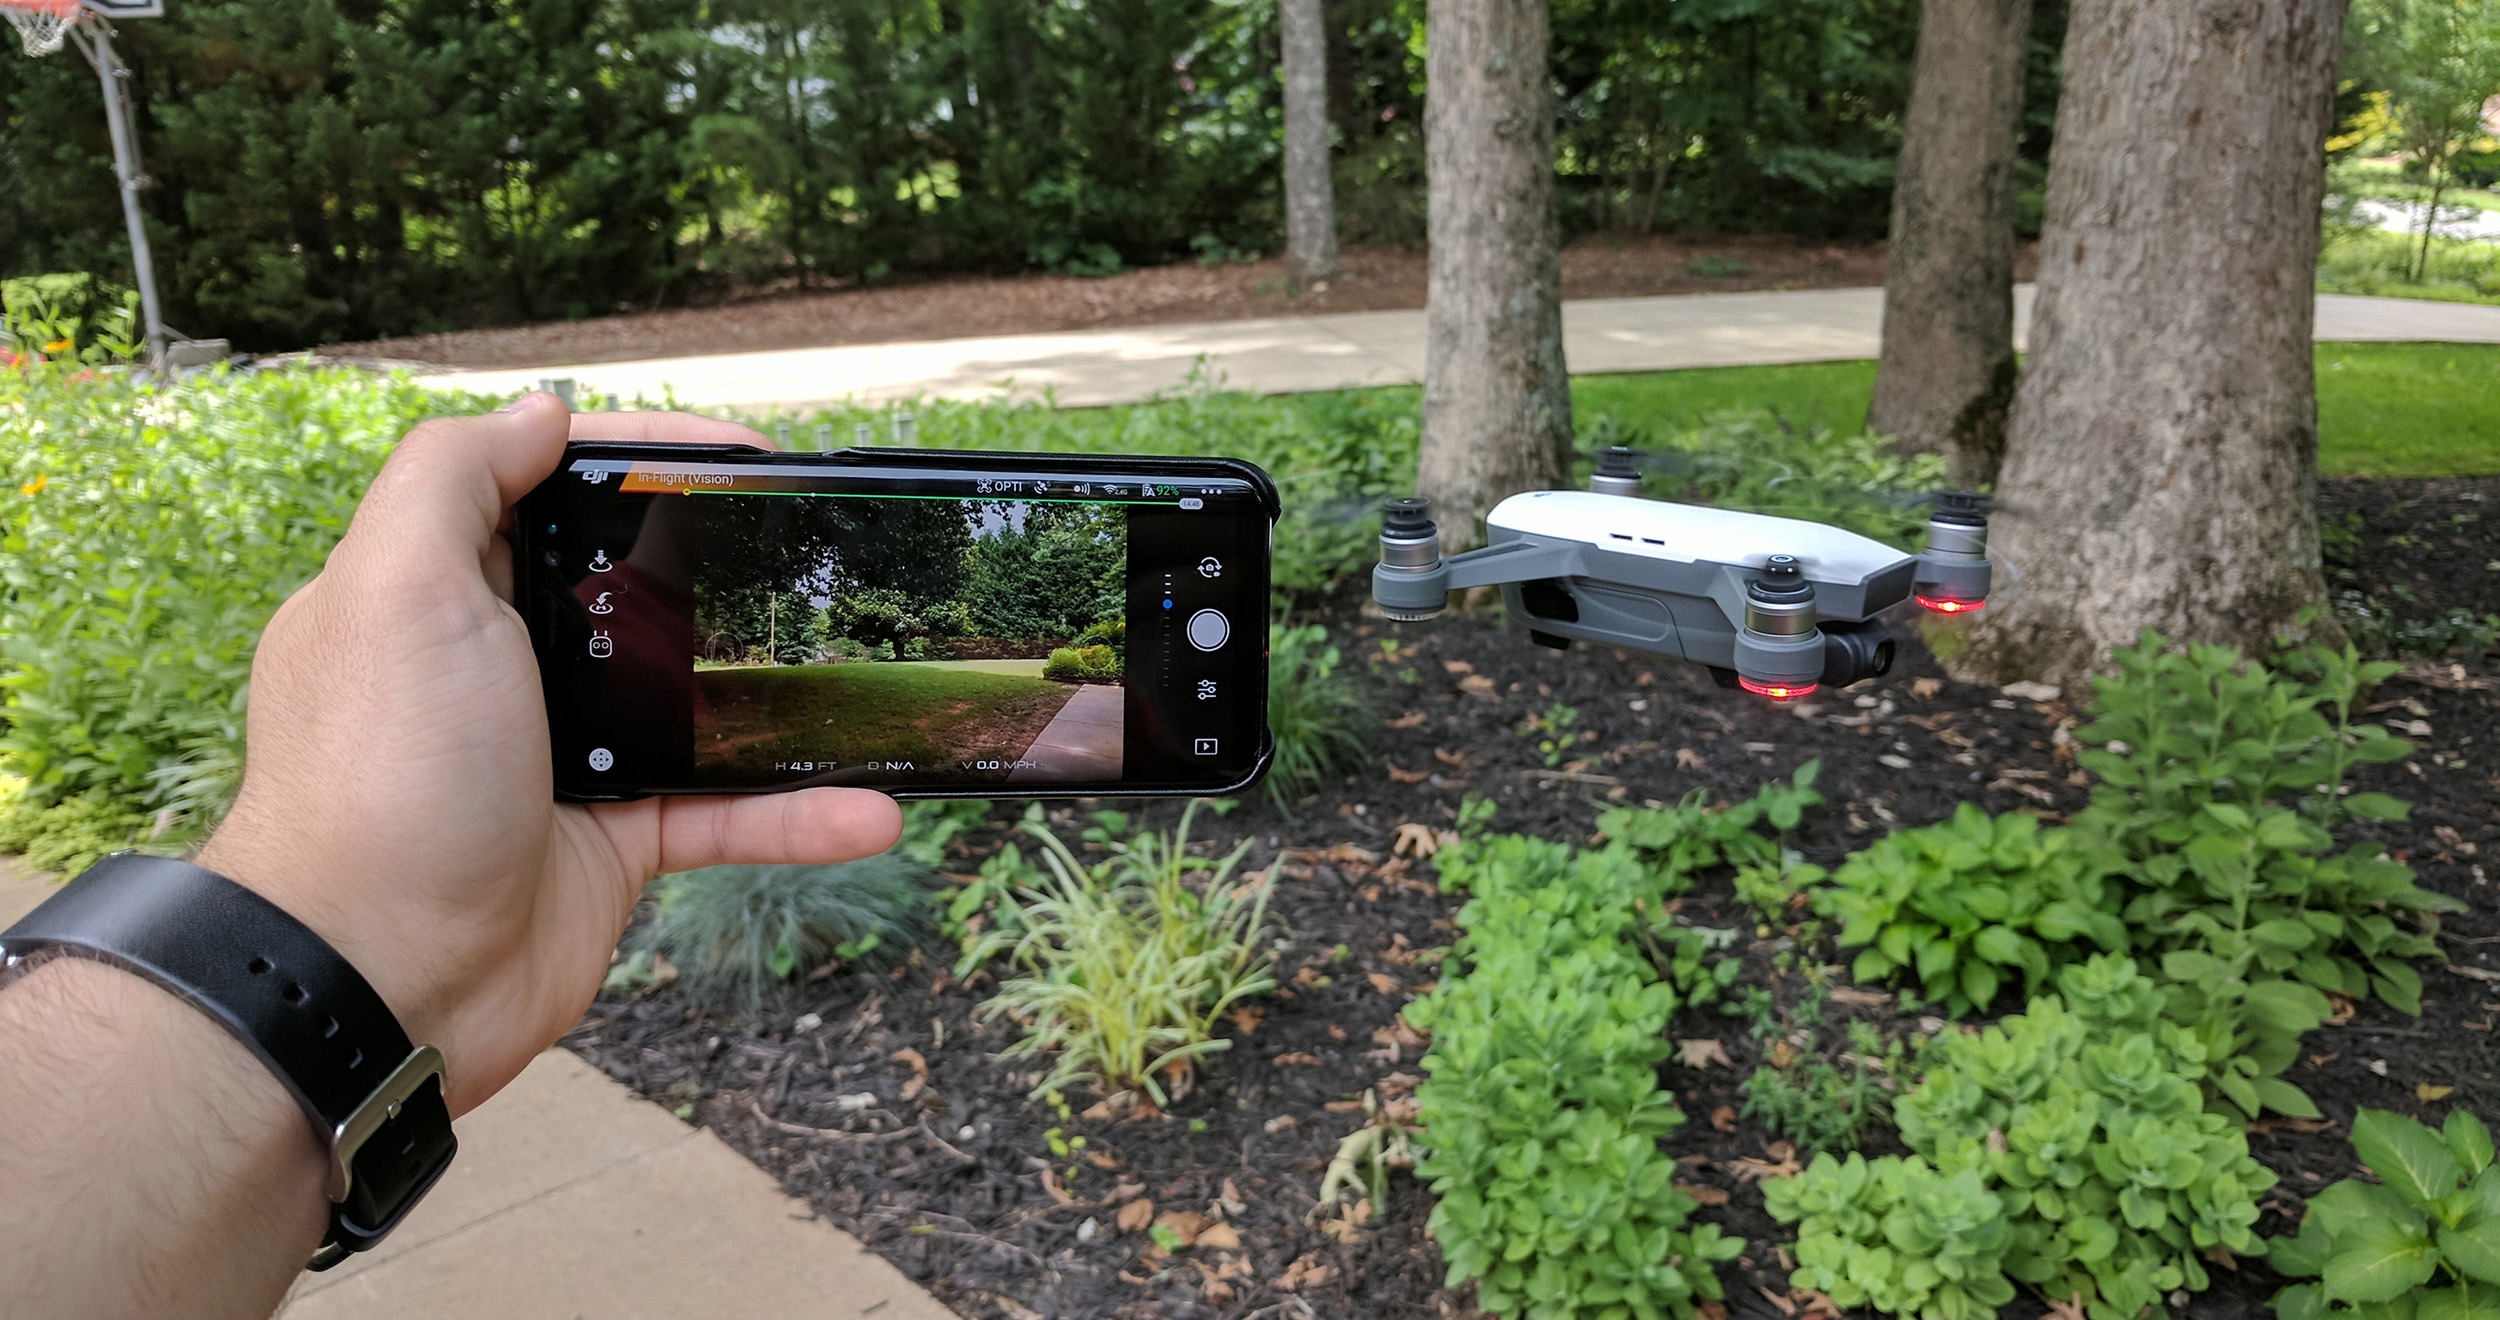 Having trouble connecting your DJI Spark to Android? Here's